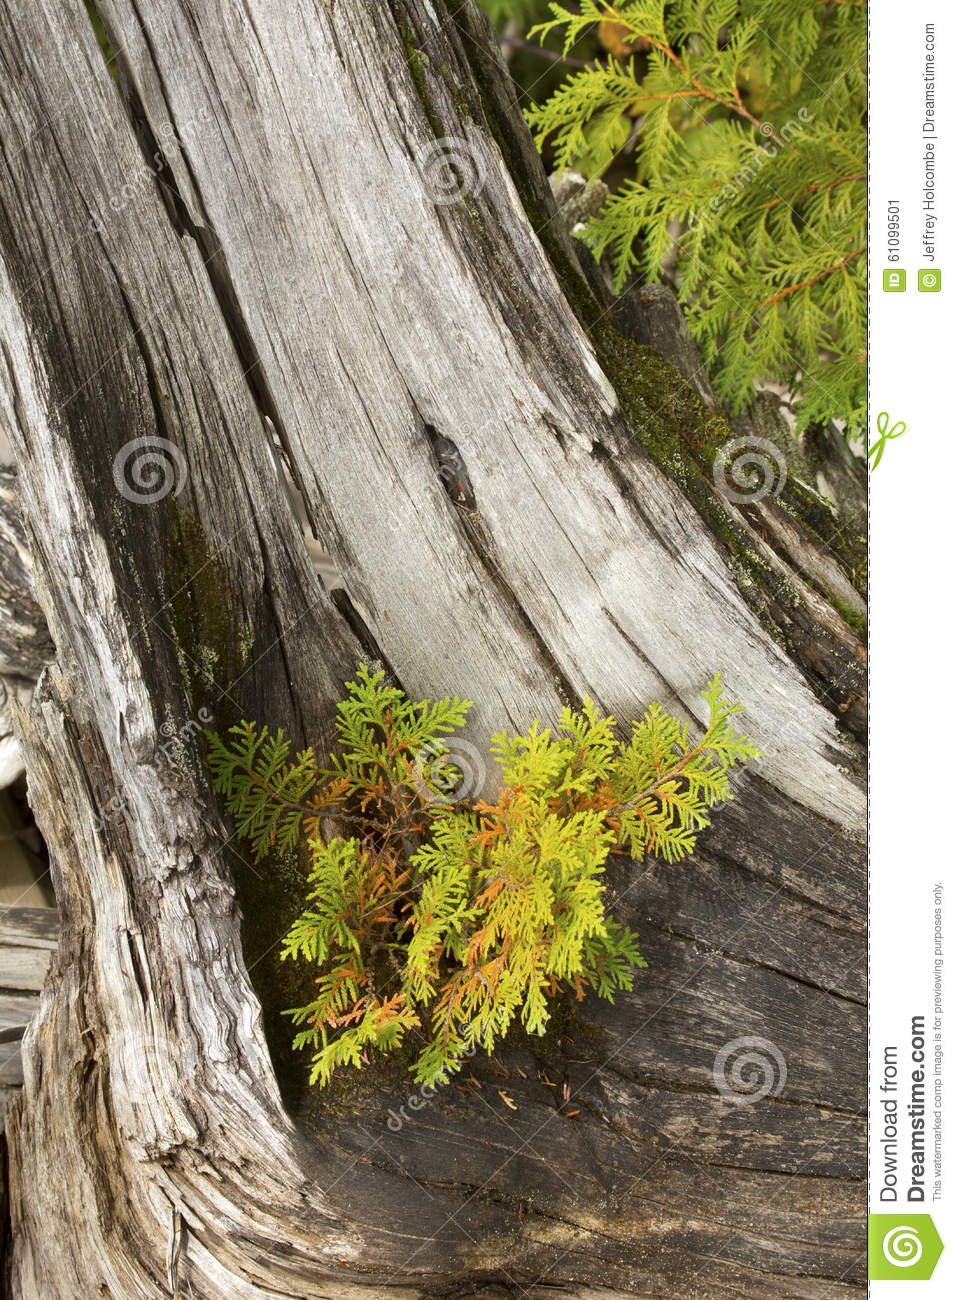 white cedar seedling grows on a driftwood stump in maine